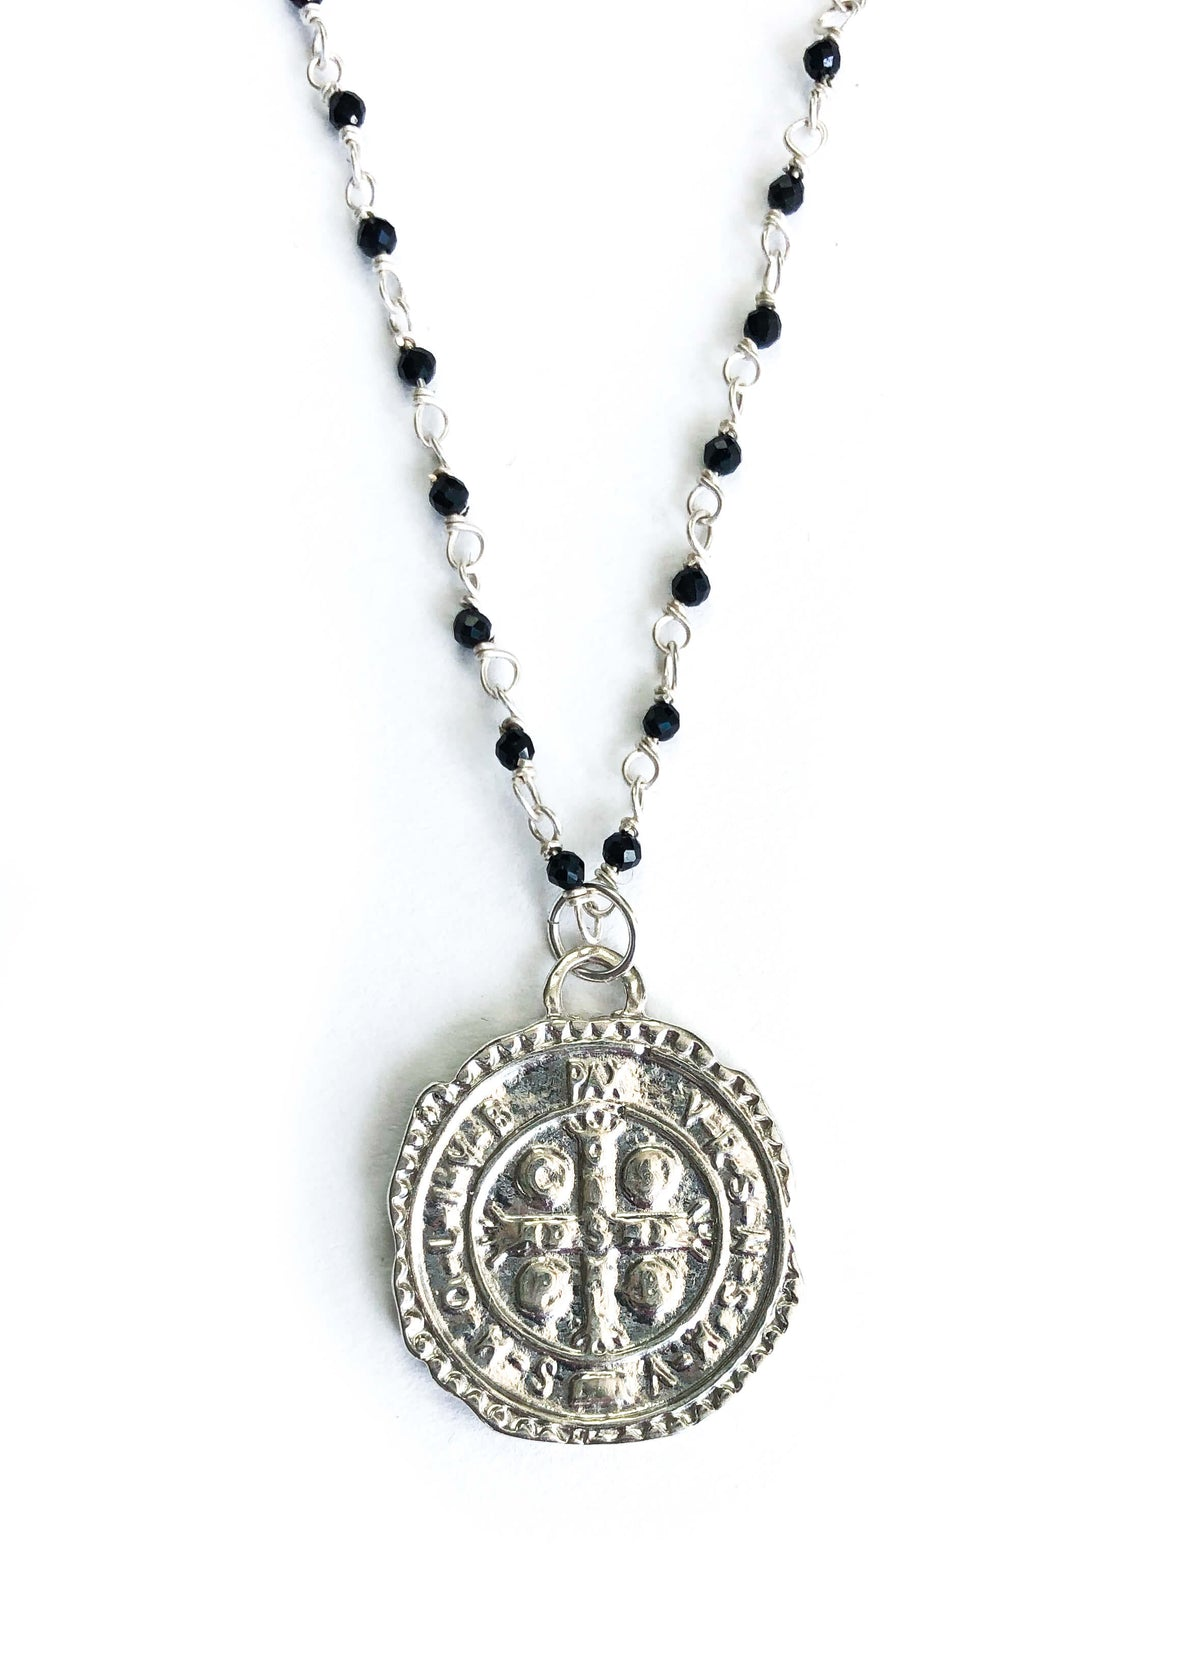 Sterling Silver Coin Medallion Necklace with Black Spinel Chain